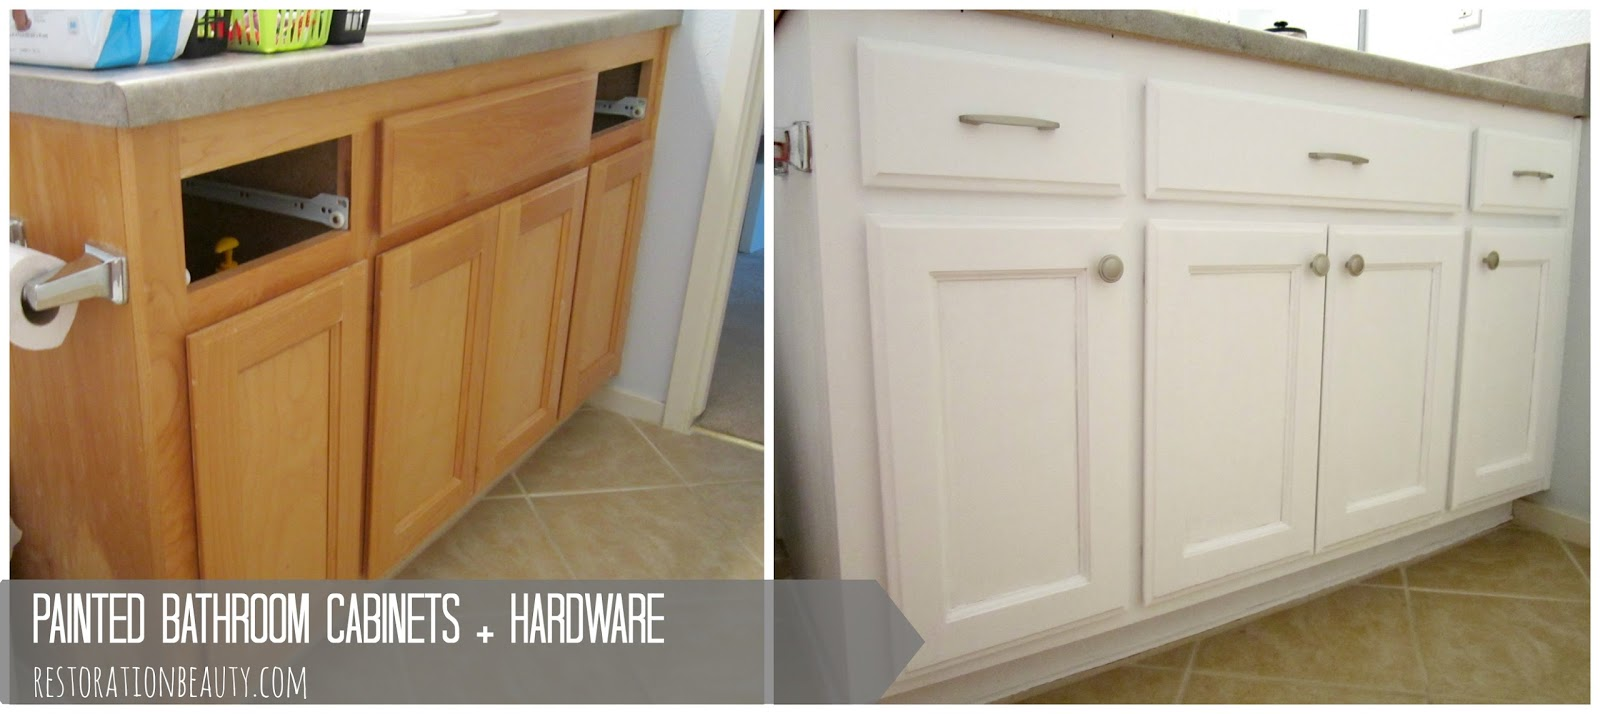 How to paint bathroom cabinets - Painted Bathroom Cabinets Hardware